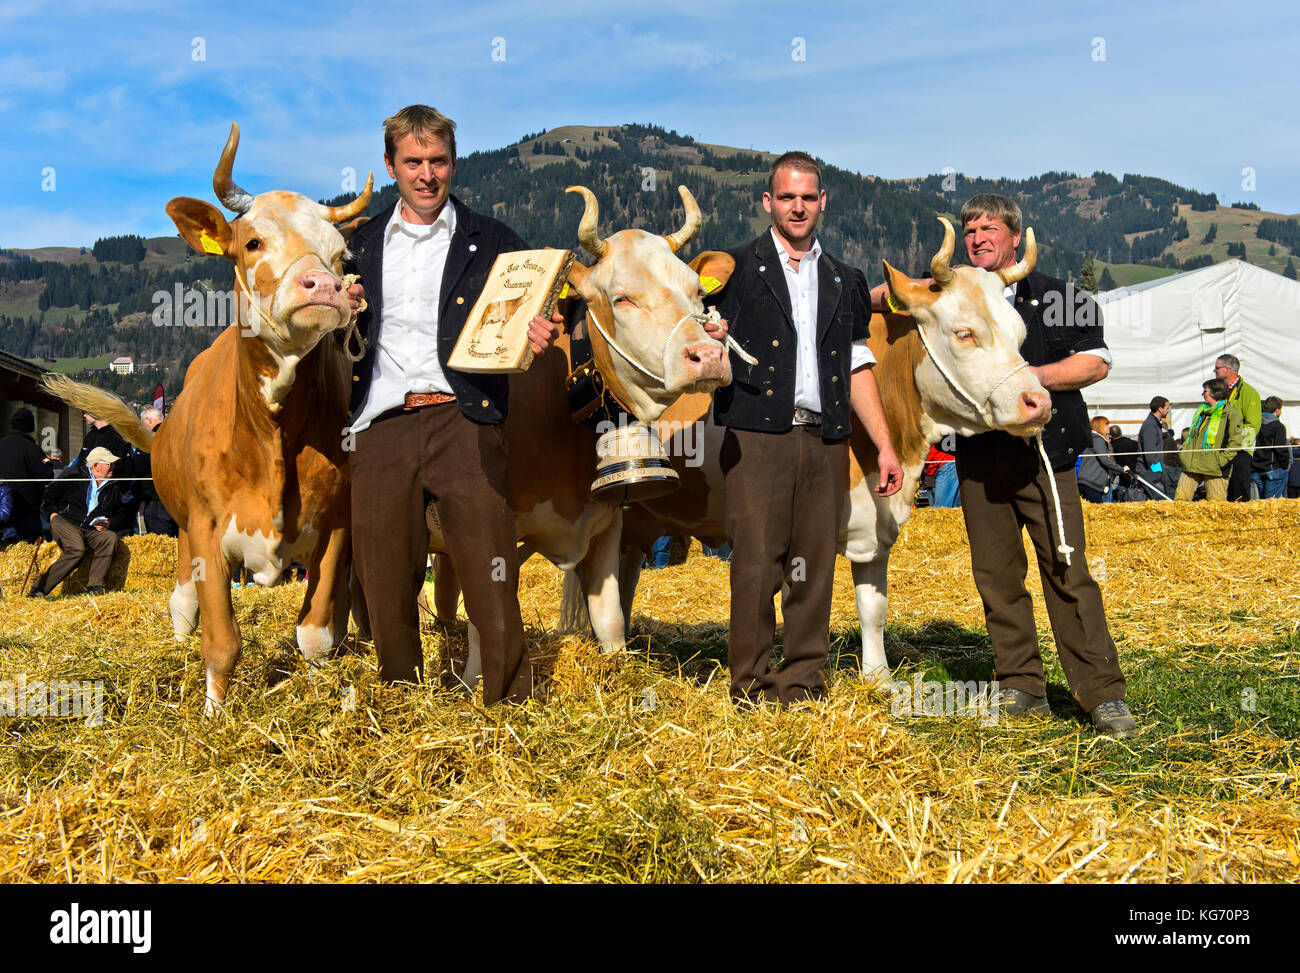 The winning Simmental cows at the Miss Simmental beauty contest, SWISSCOW Topschau Saanenland, Gstaad, Switzerland - Stock Image